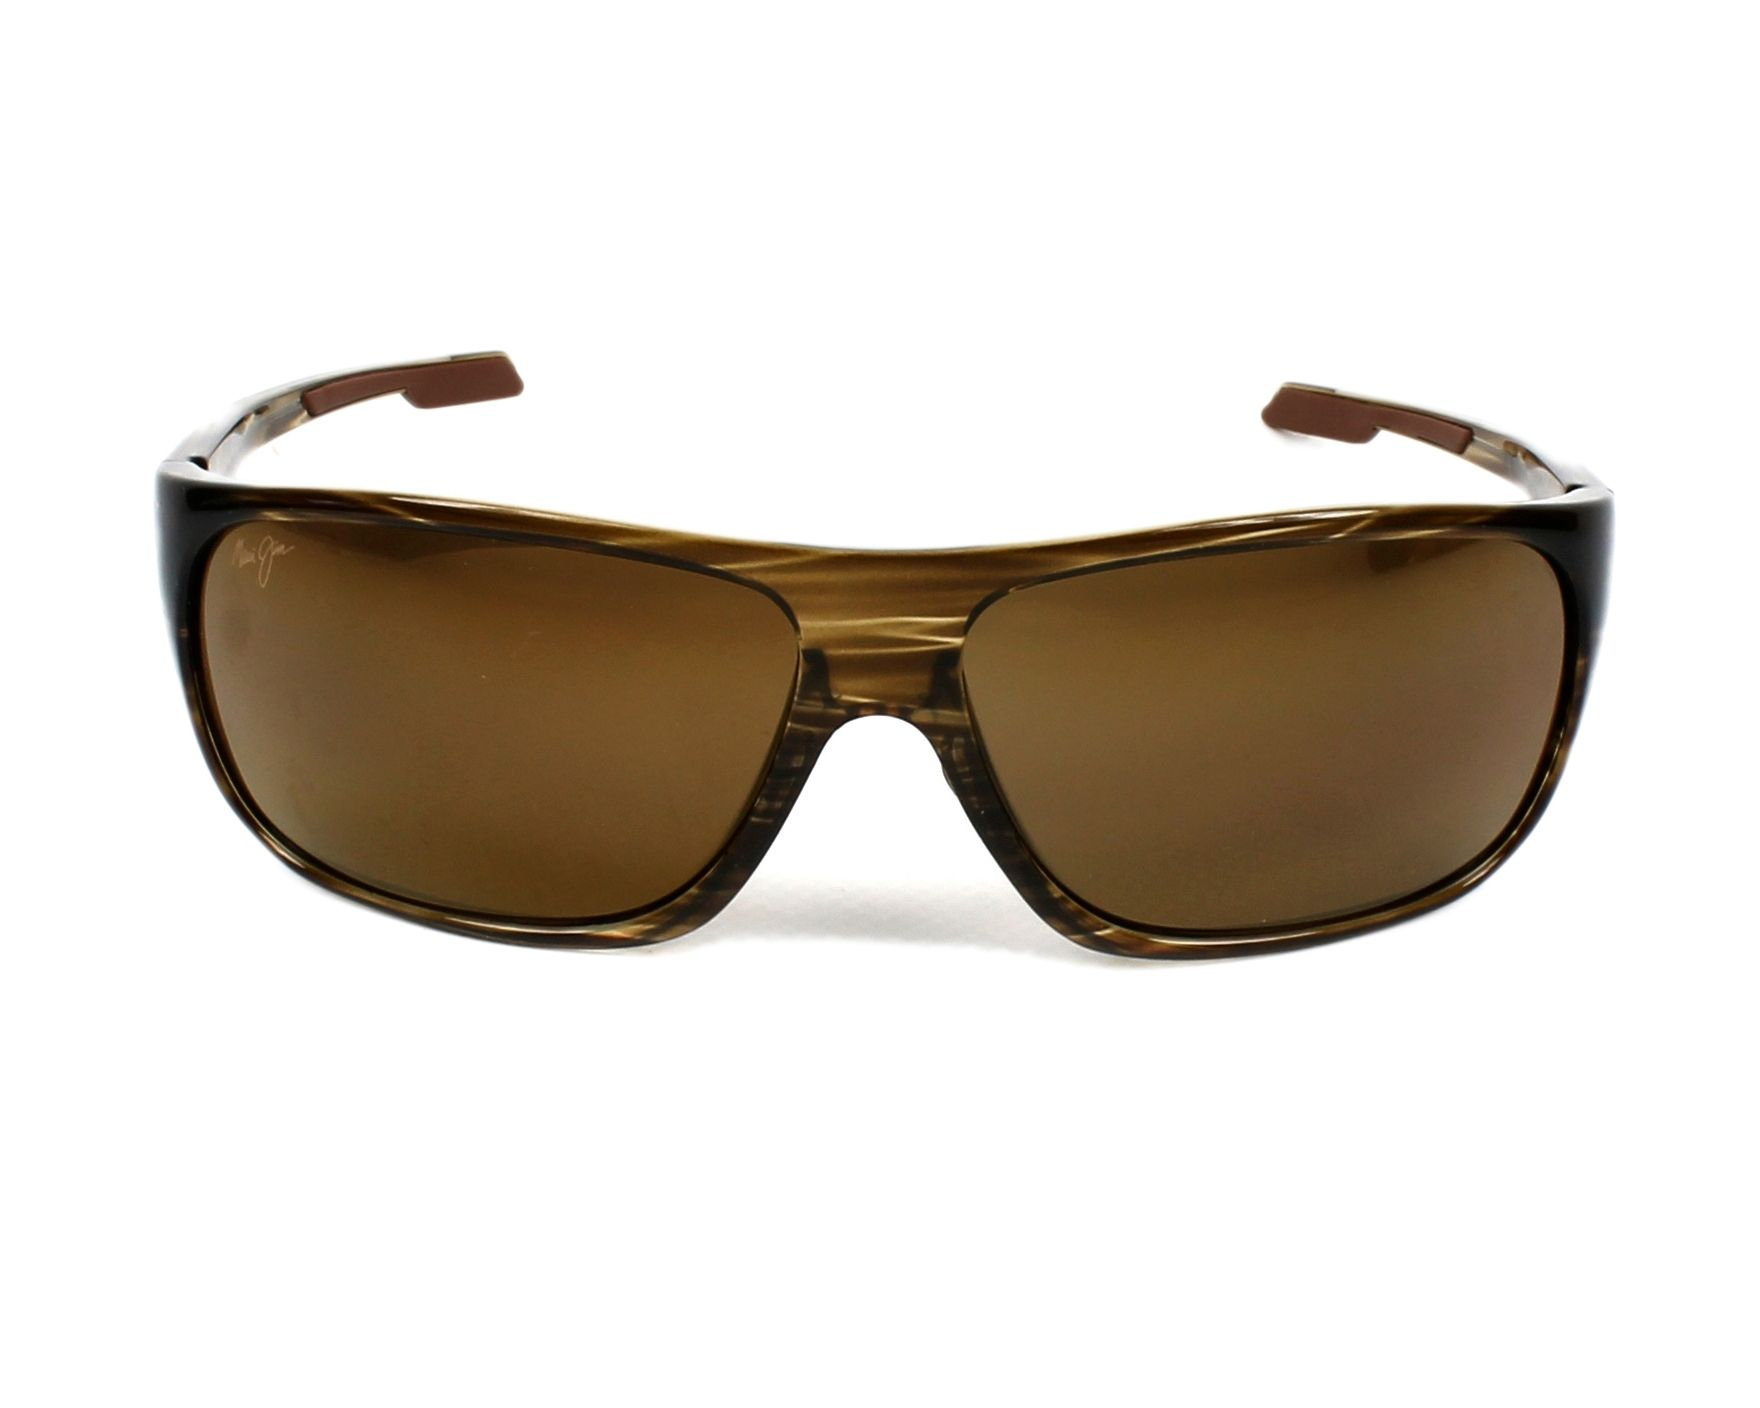 609a90f3b8d Sunglasses Maui Jim H-237 15 - Brown front view